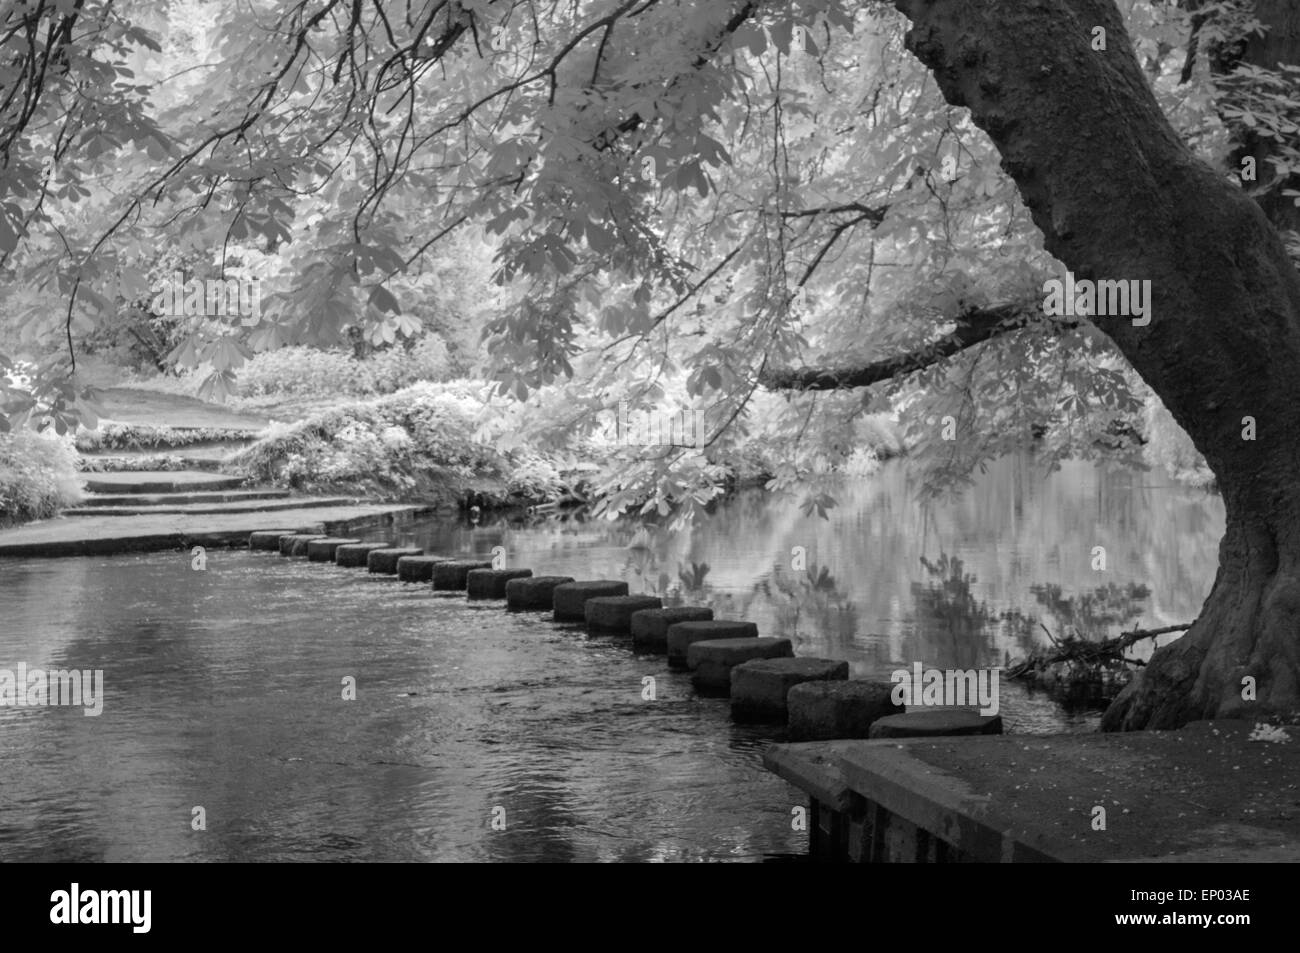 Stepping Stones over River Mole, Surrey, England. Infra-red image. - Stock Image